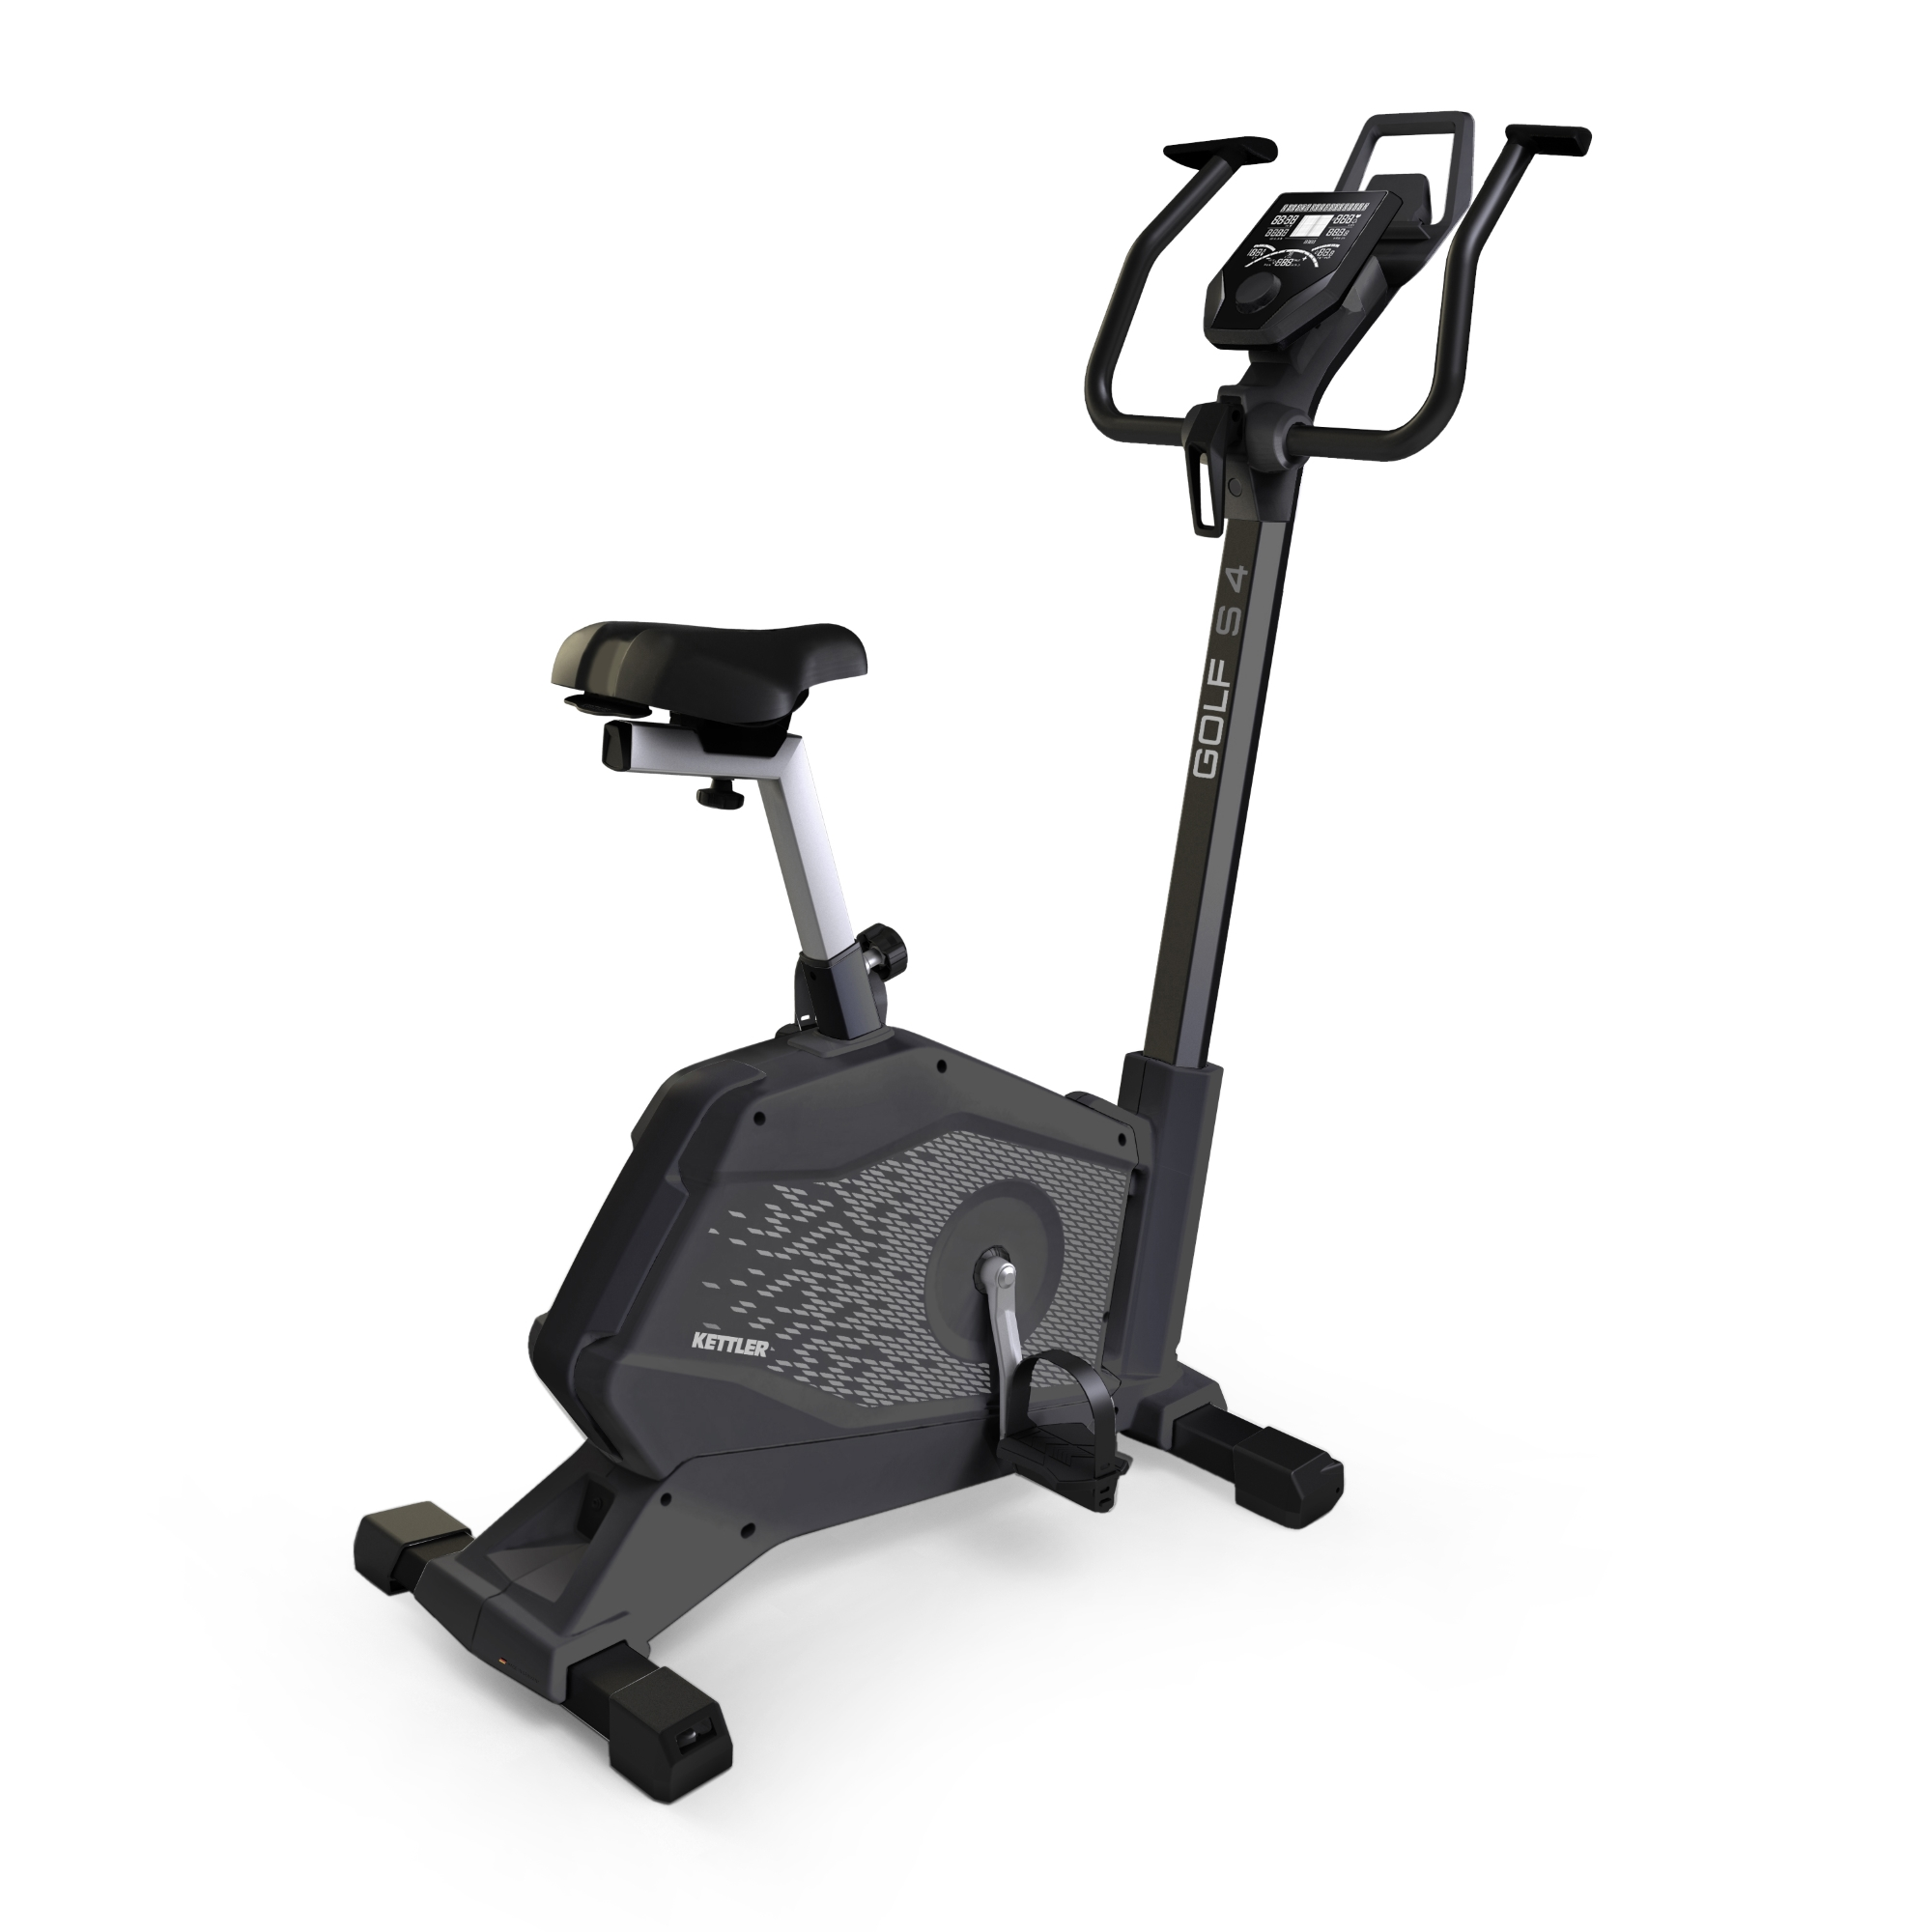 Kettler Golf S4 Exercise Bike